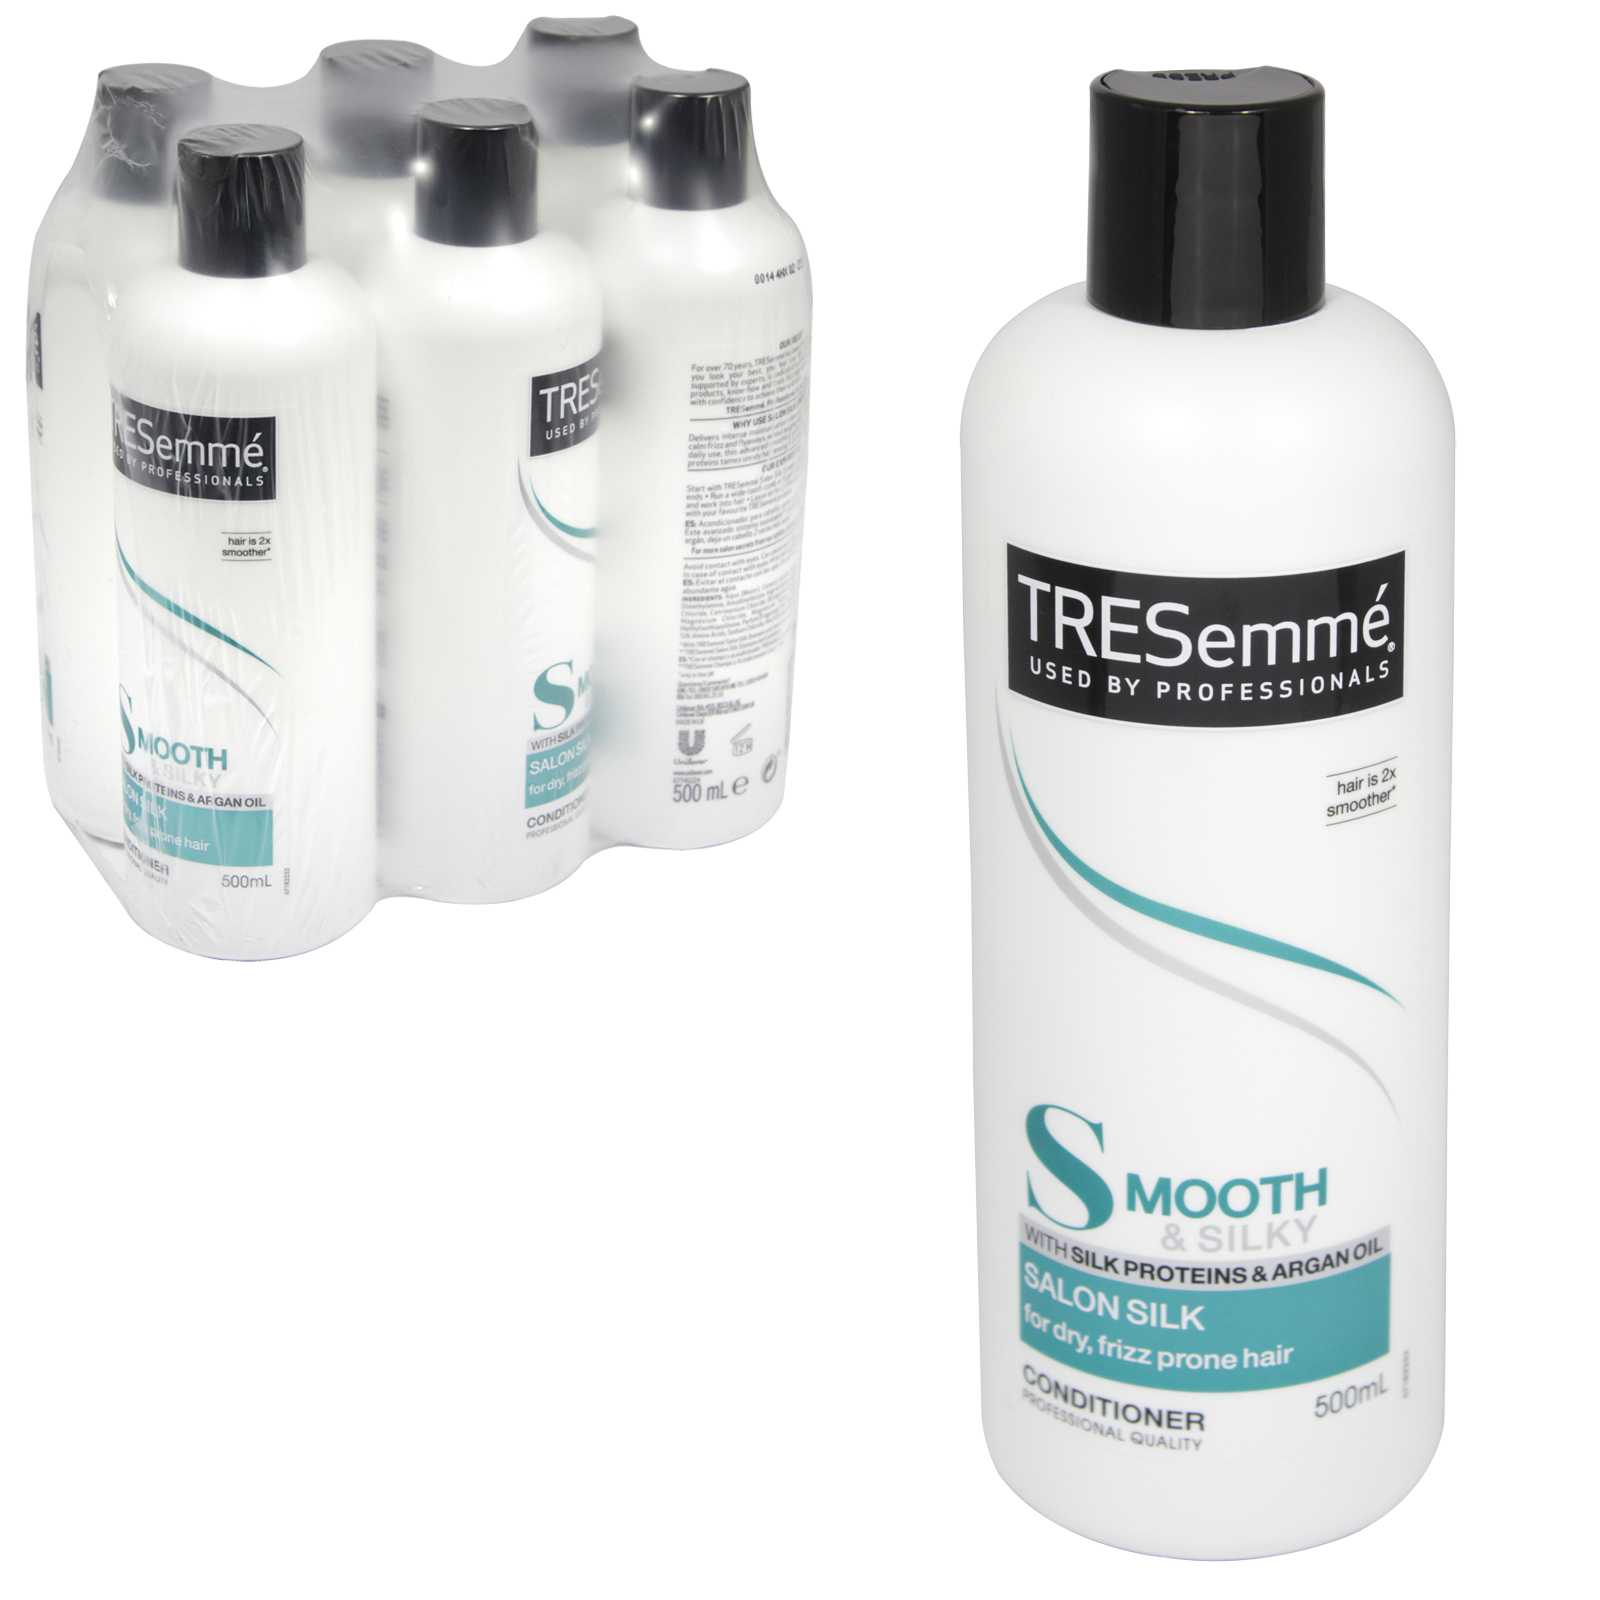 TRESEMME CONDITIONER 500M SALON SILKFOR DRY,FIZZ PRONE HAIR X6